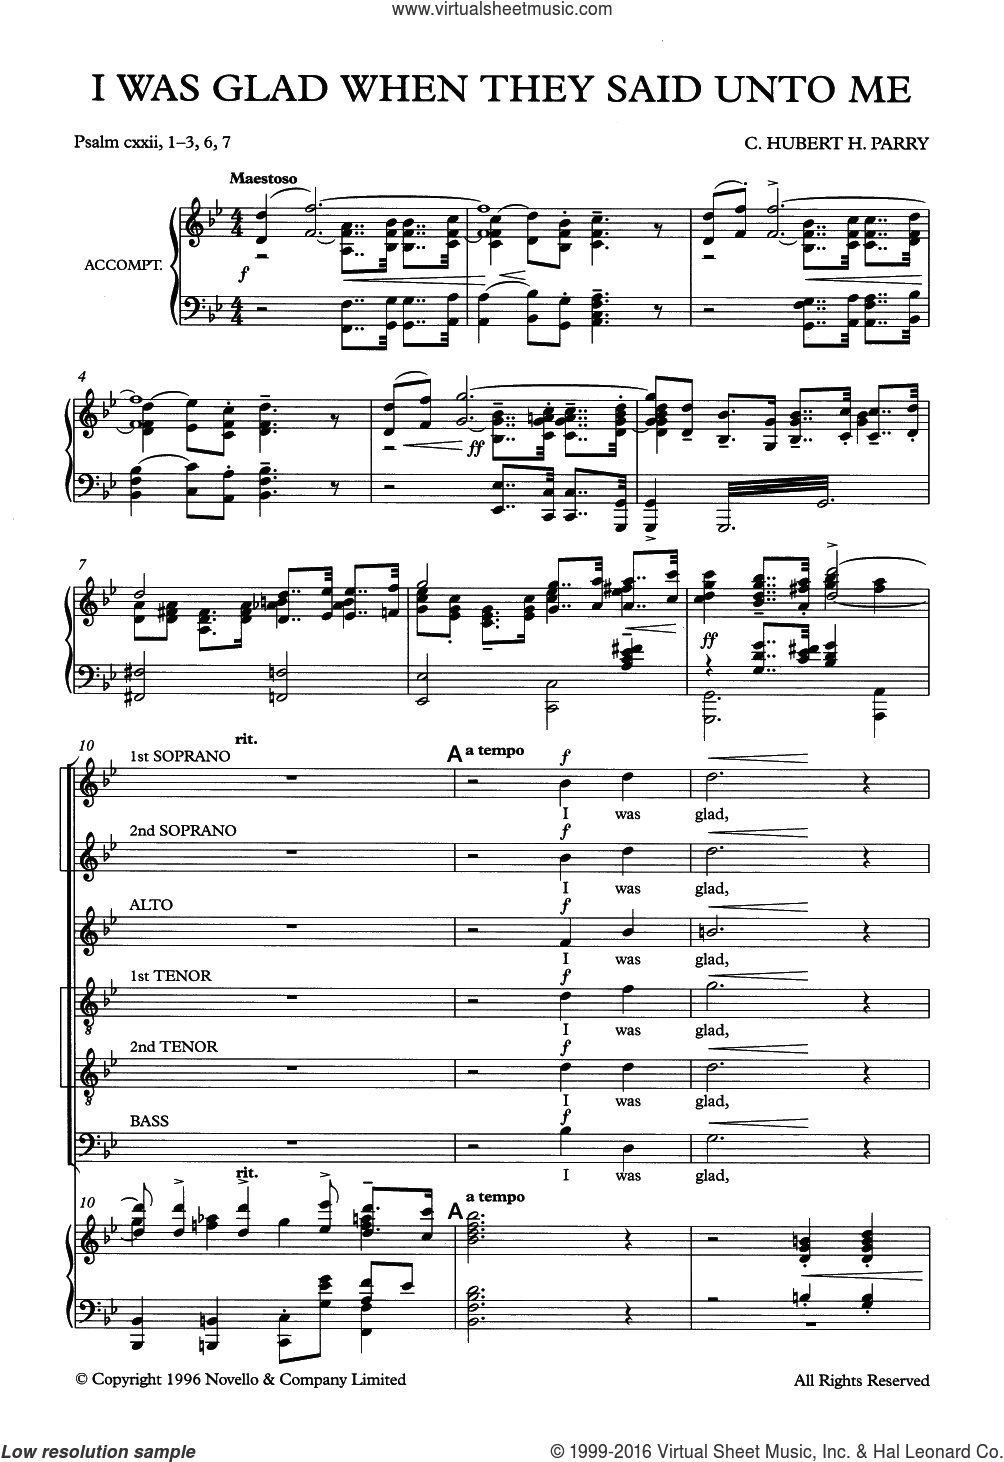 I Was Glad When They Said Unto Me sheet music for voice, piano or guitar by Hubert Parry, intermediate voice, piano or guitar. Score Image Preview.